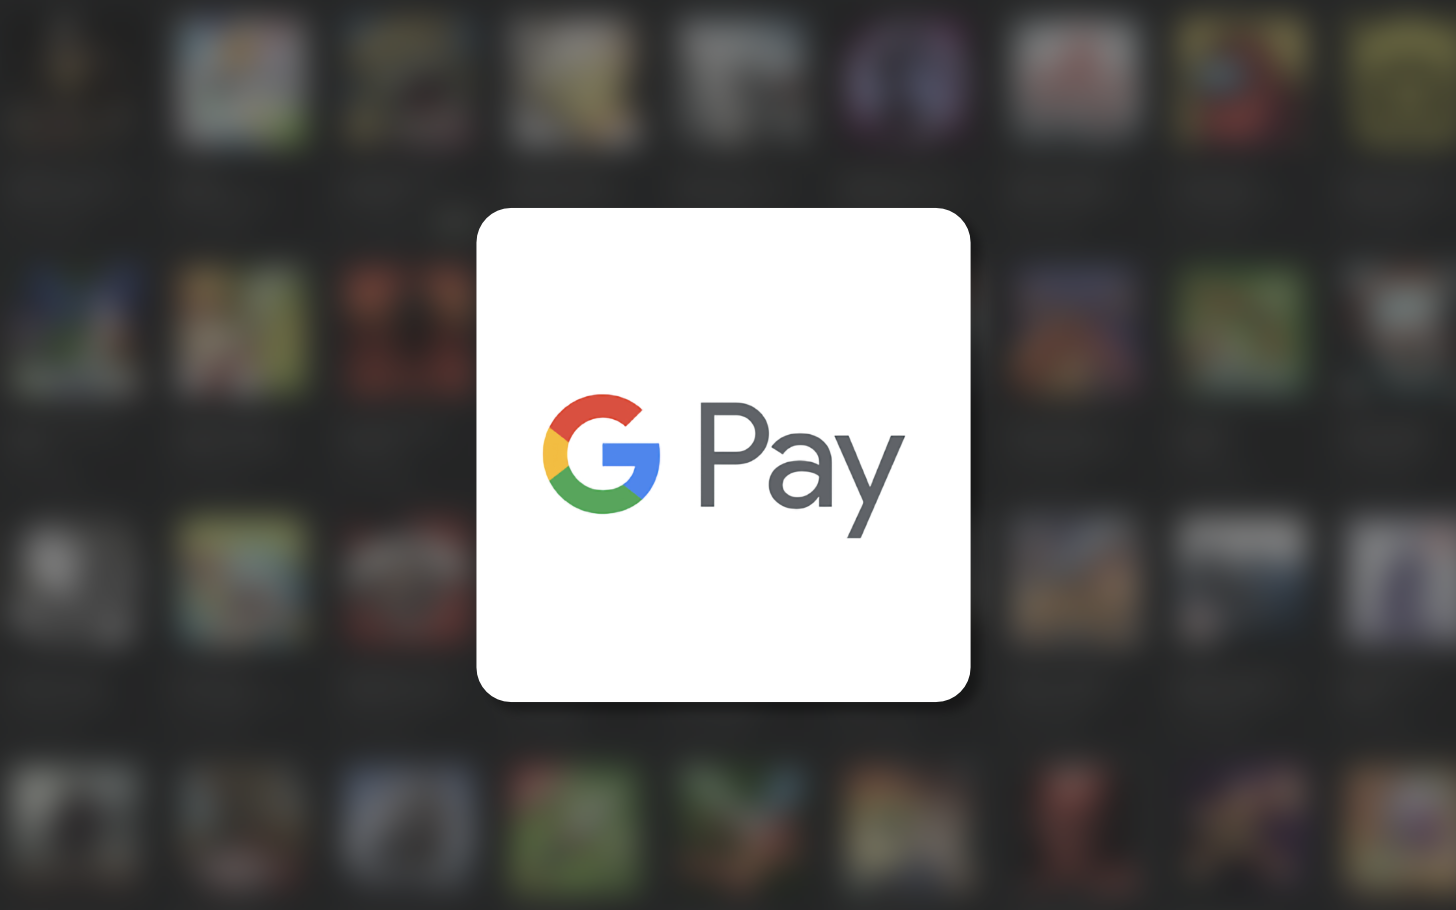 Google Pay gains support for 84 financial institutions across the globe